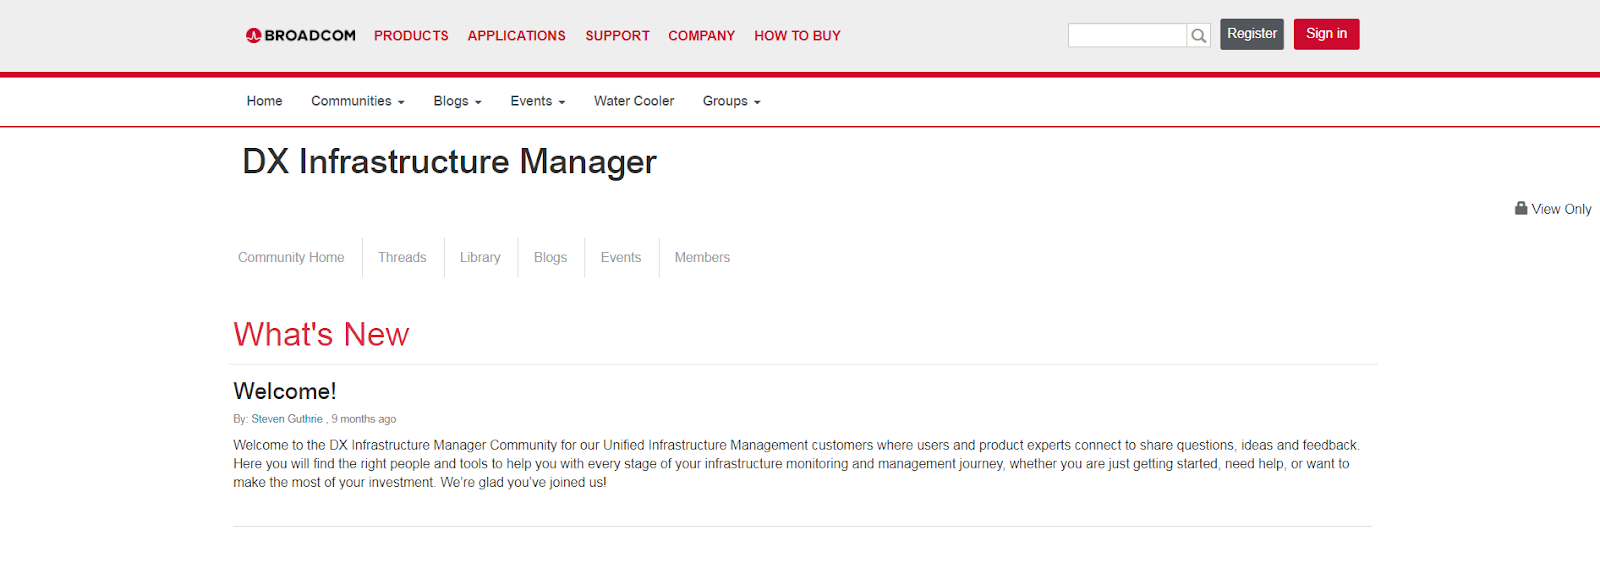 DX Infrastructure Manager